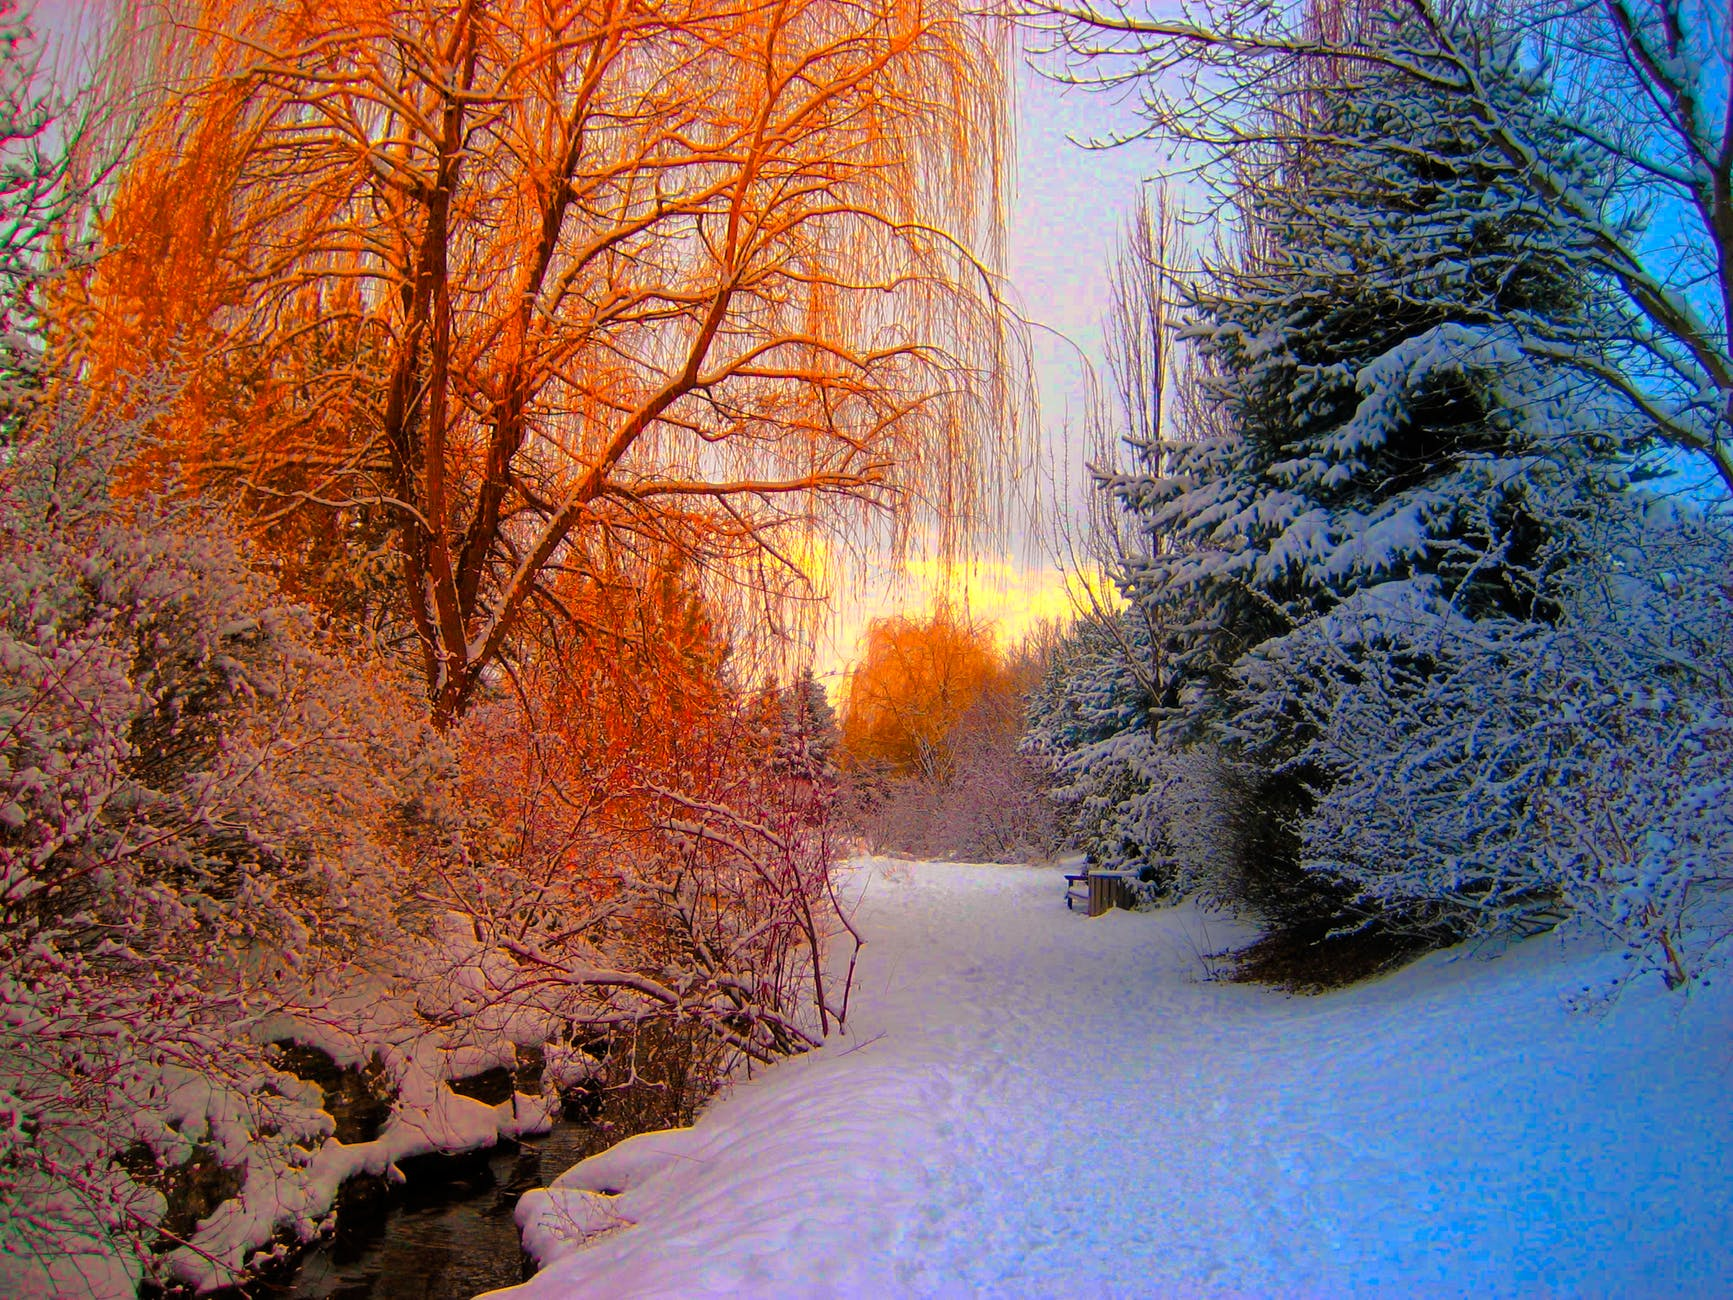 orange and blue and white snow forest